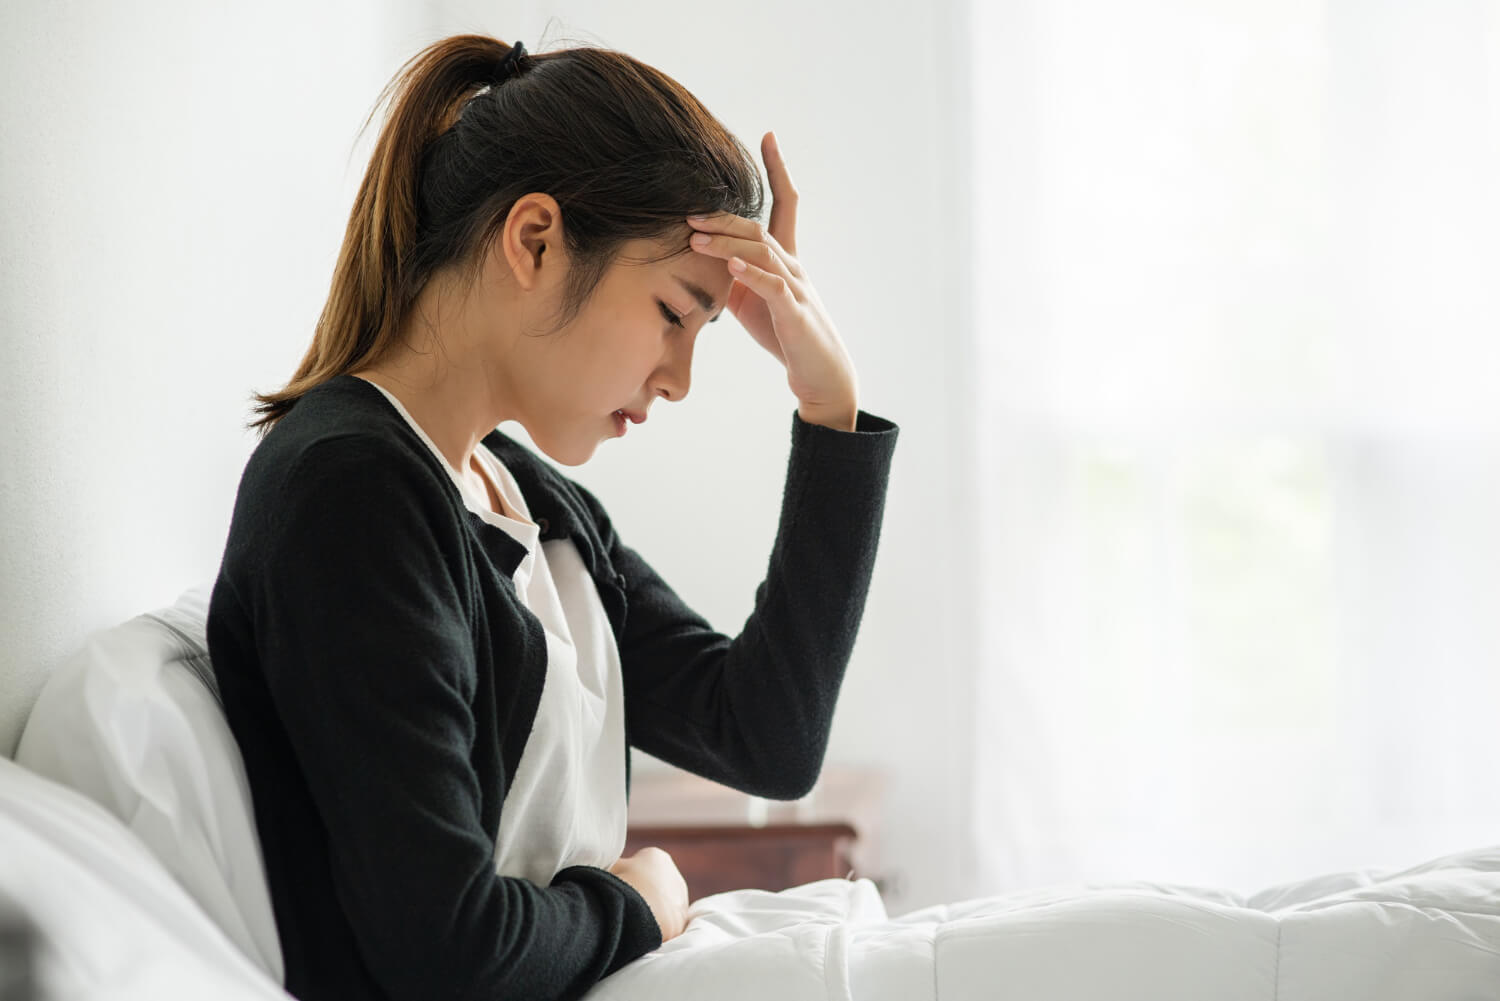 sick-woman-had-headache-hands-touched-her-head-bed